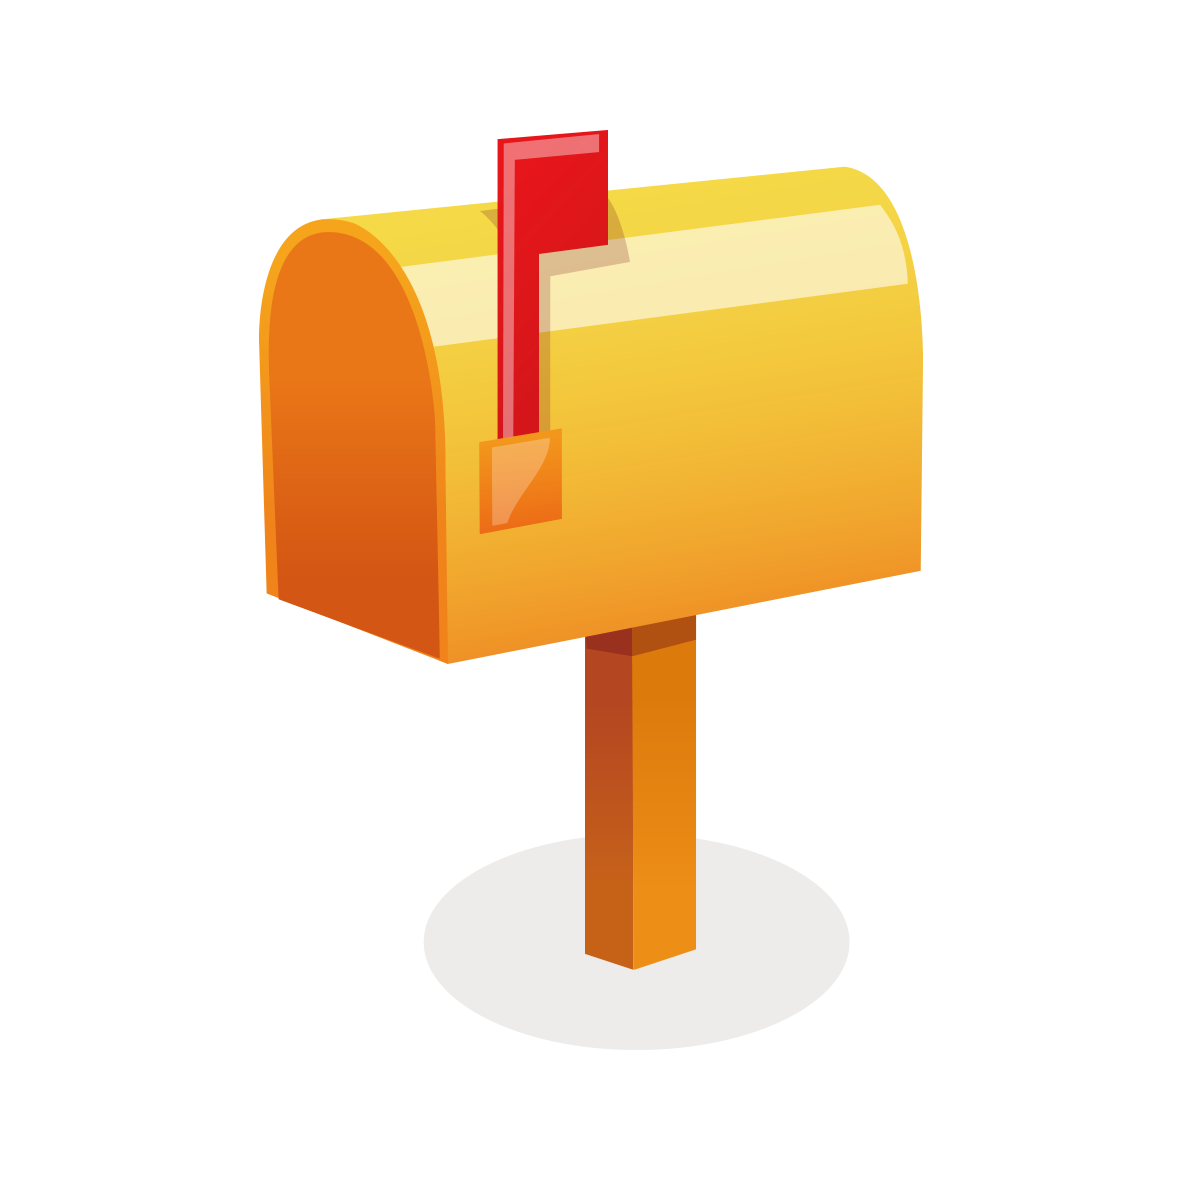 Mailbox mail letter